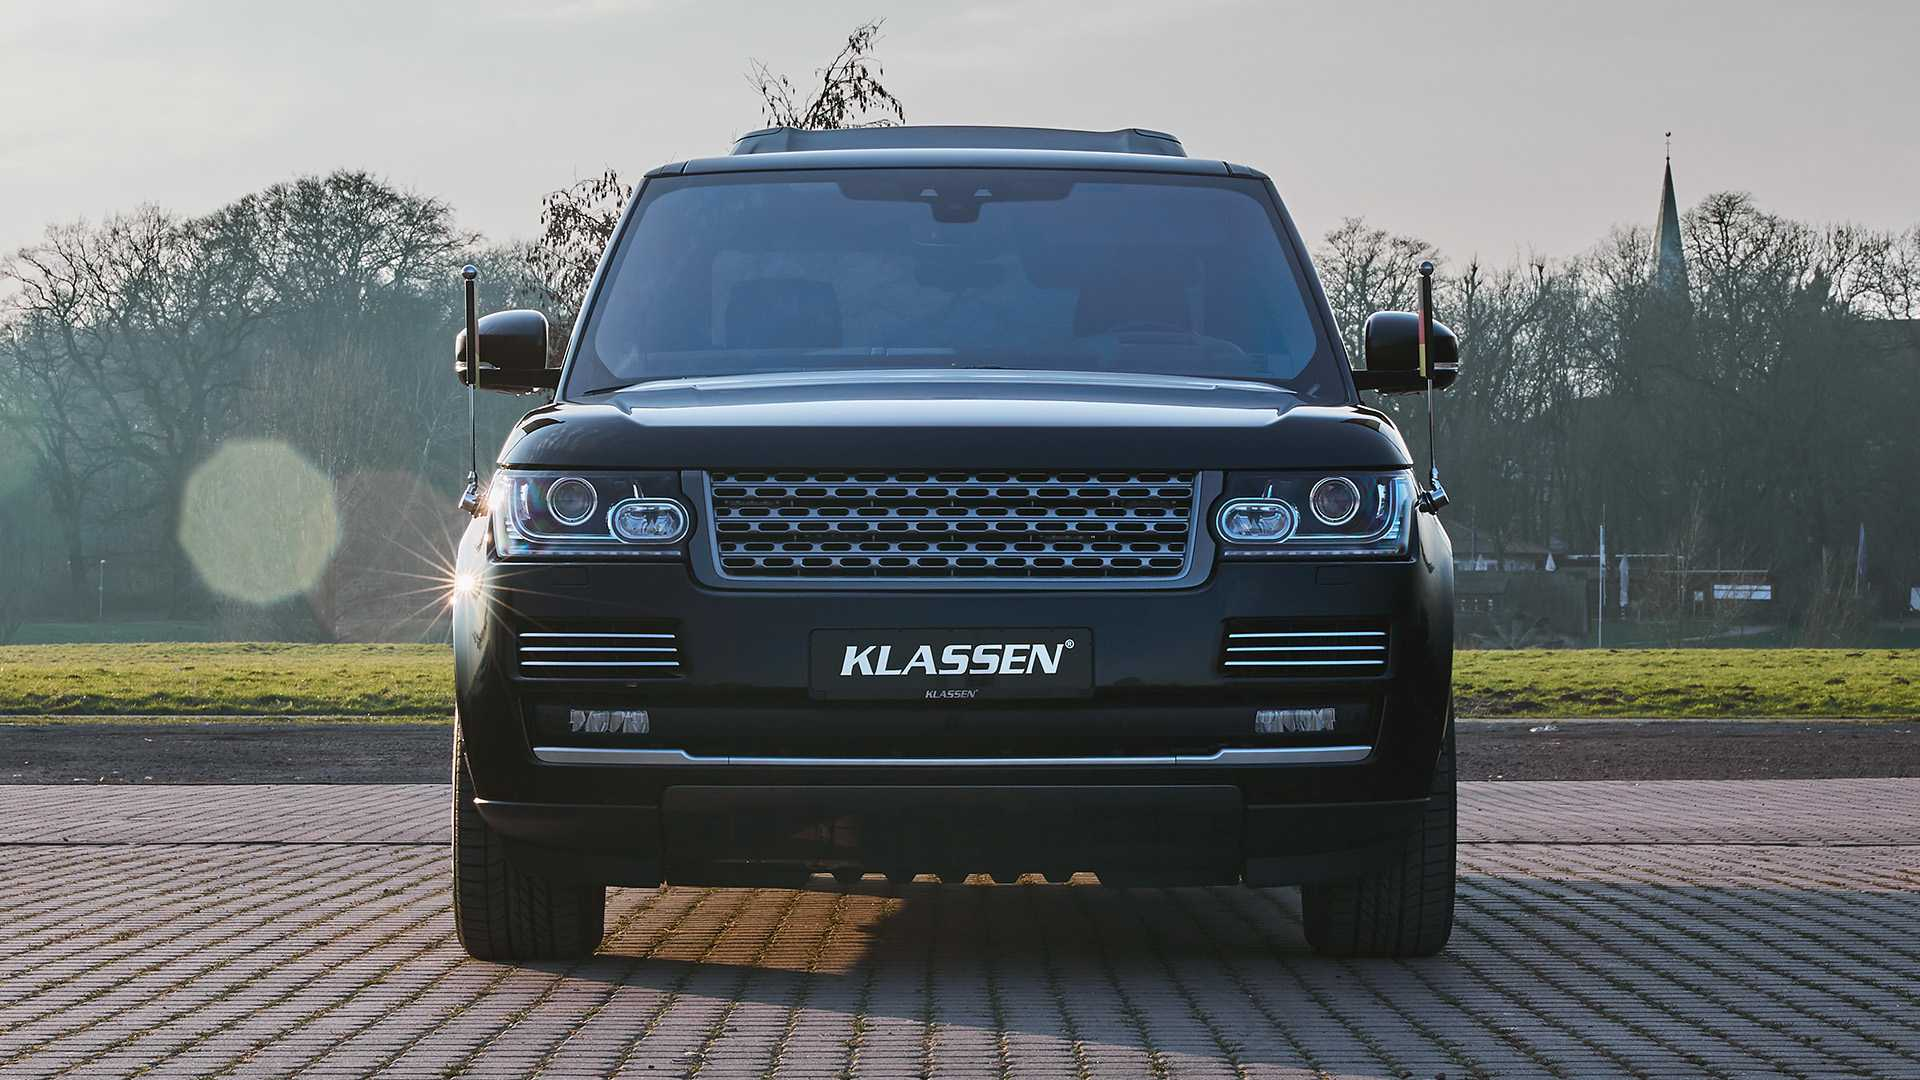 klassen-stretched-land-rover-range-rover-autobiography-4